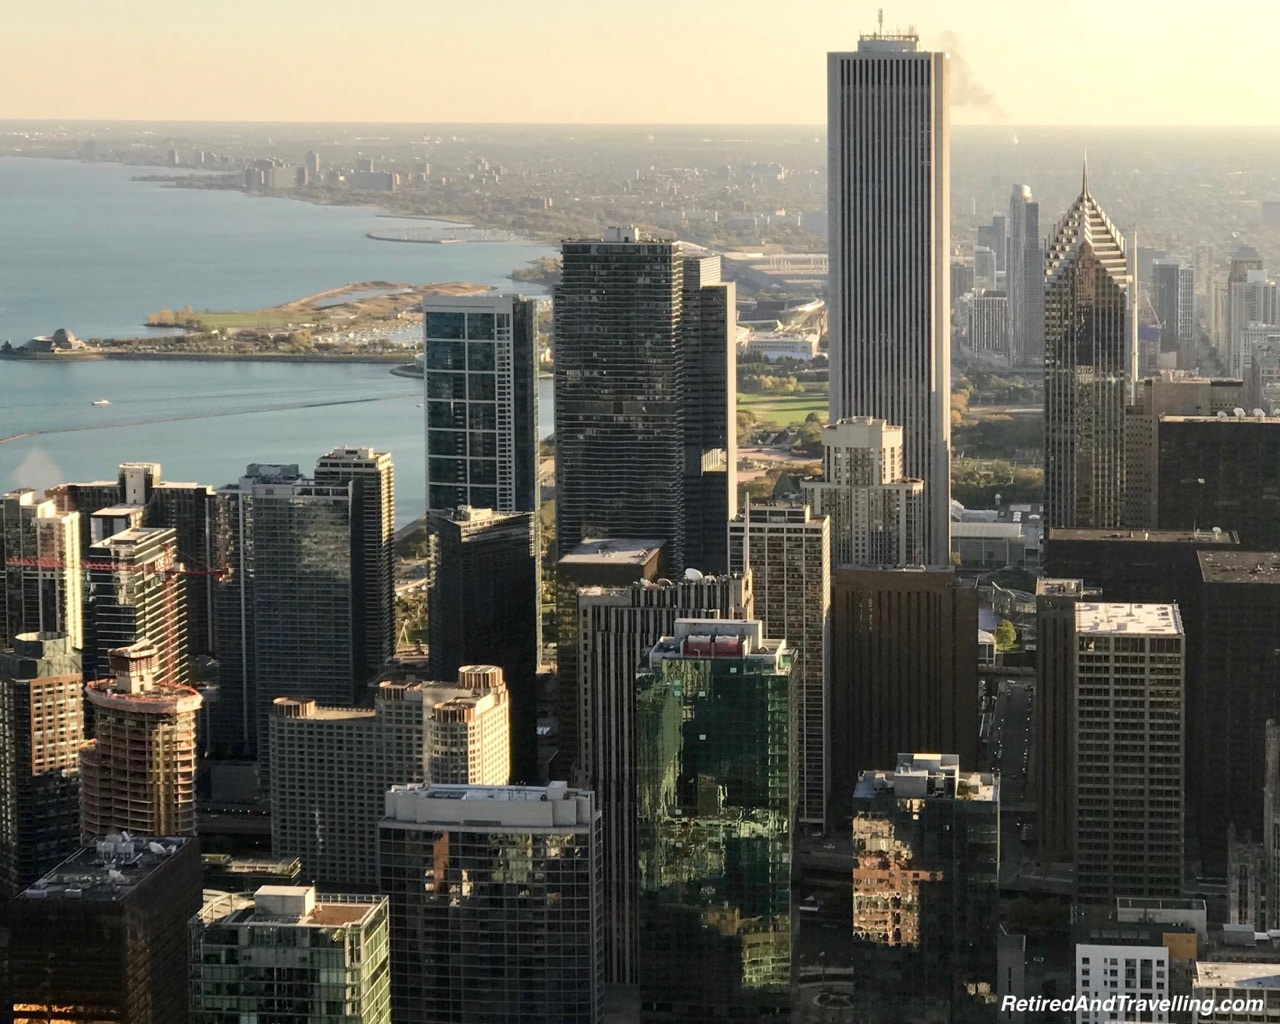 John Hancock Tower View - Eclectic Chicago Architecture.jpg